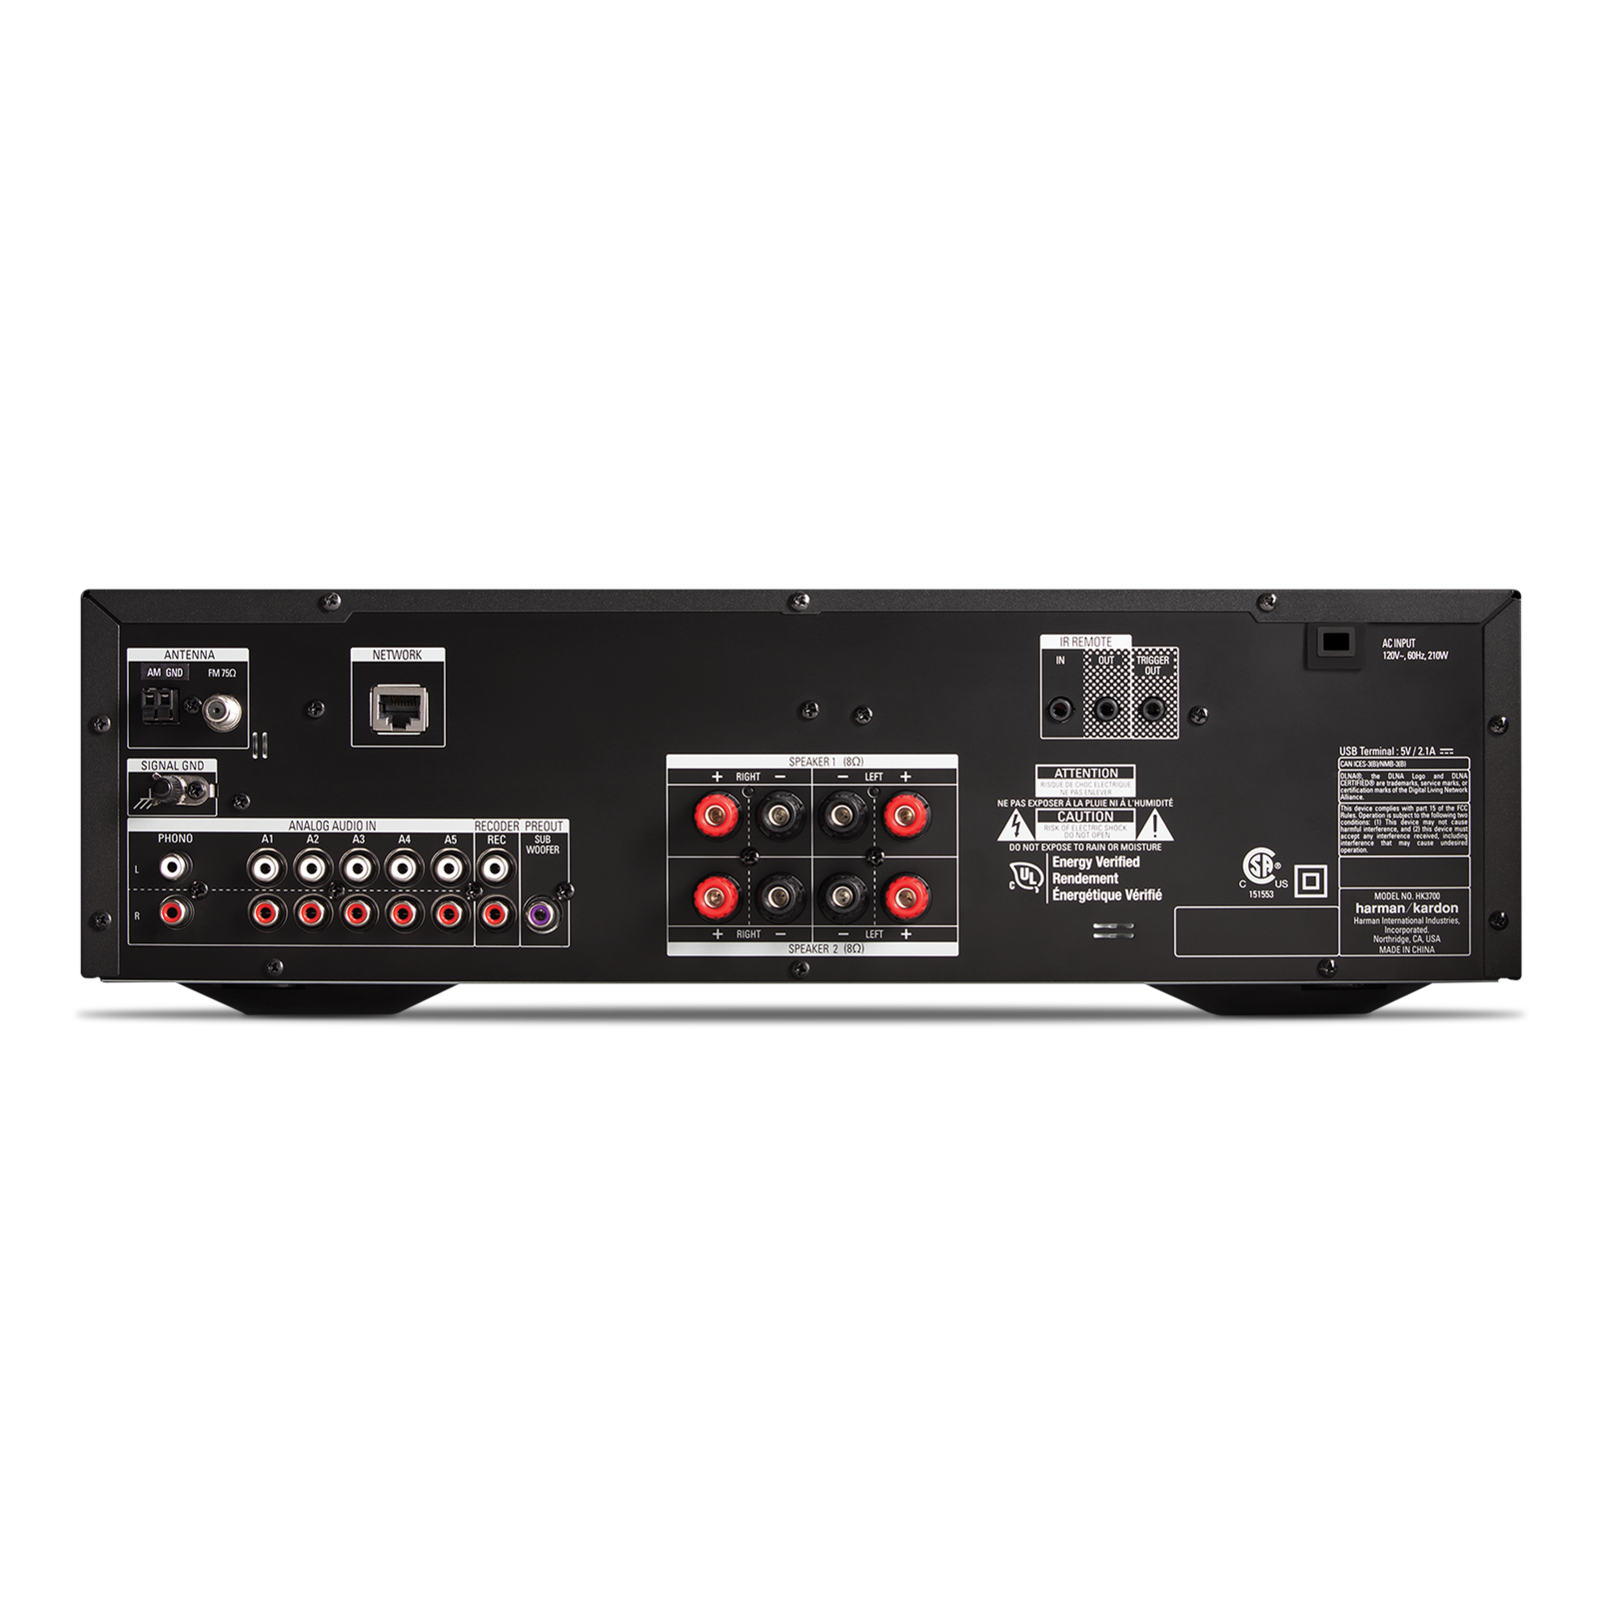 HK 3700 - Black - 170 watt stereo receiver with network connectivity - Back